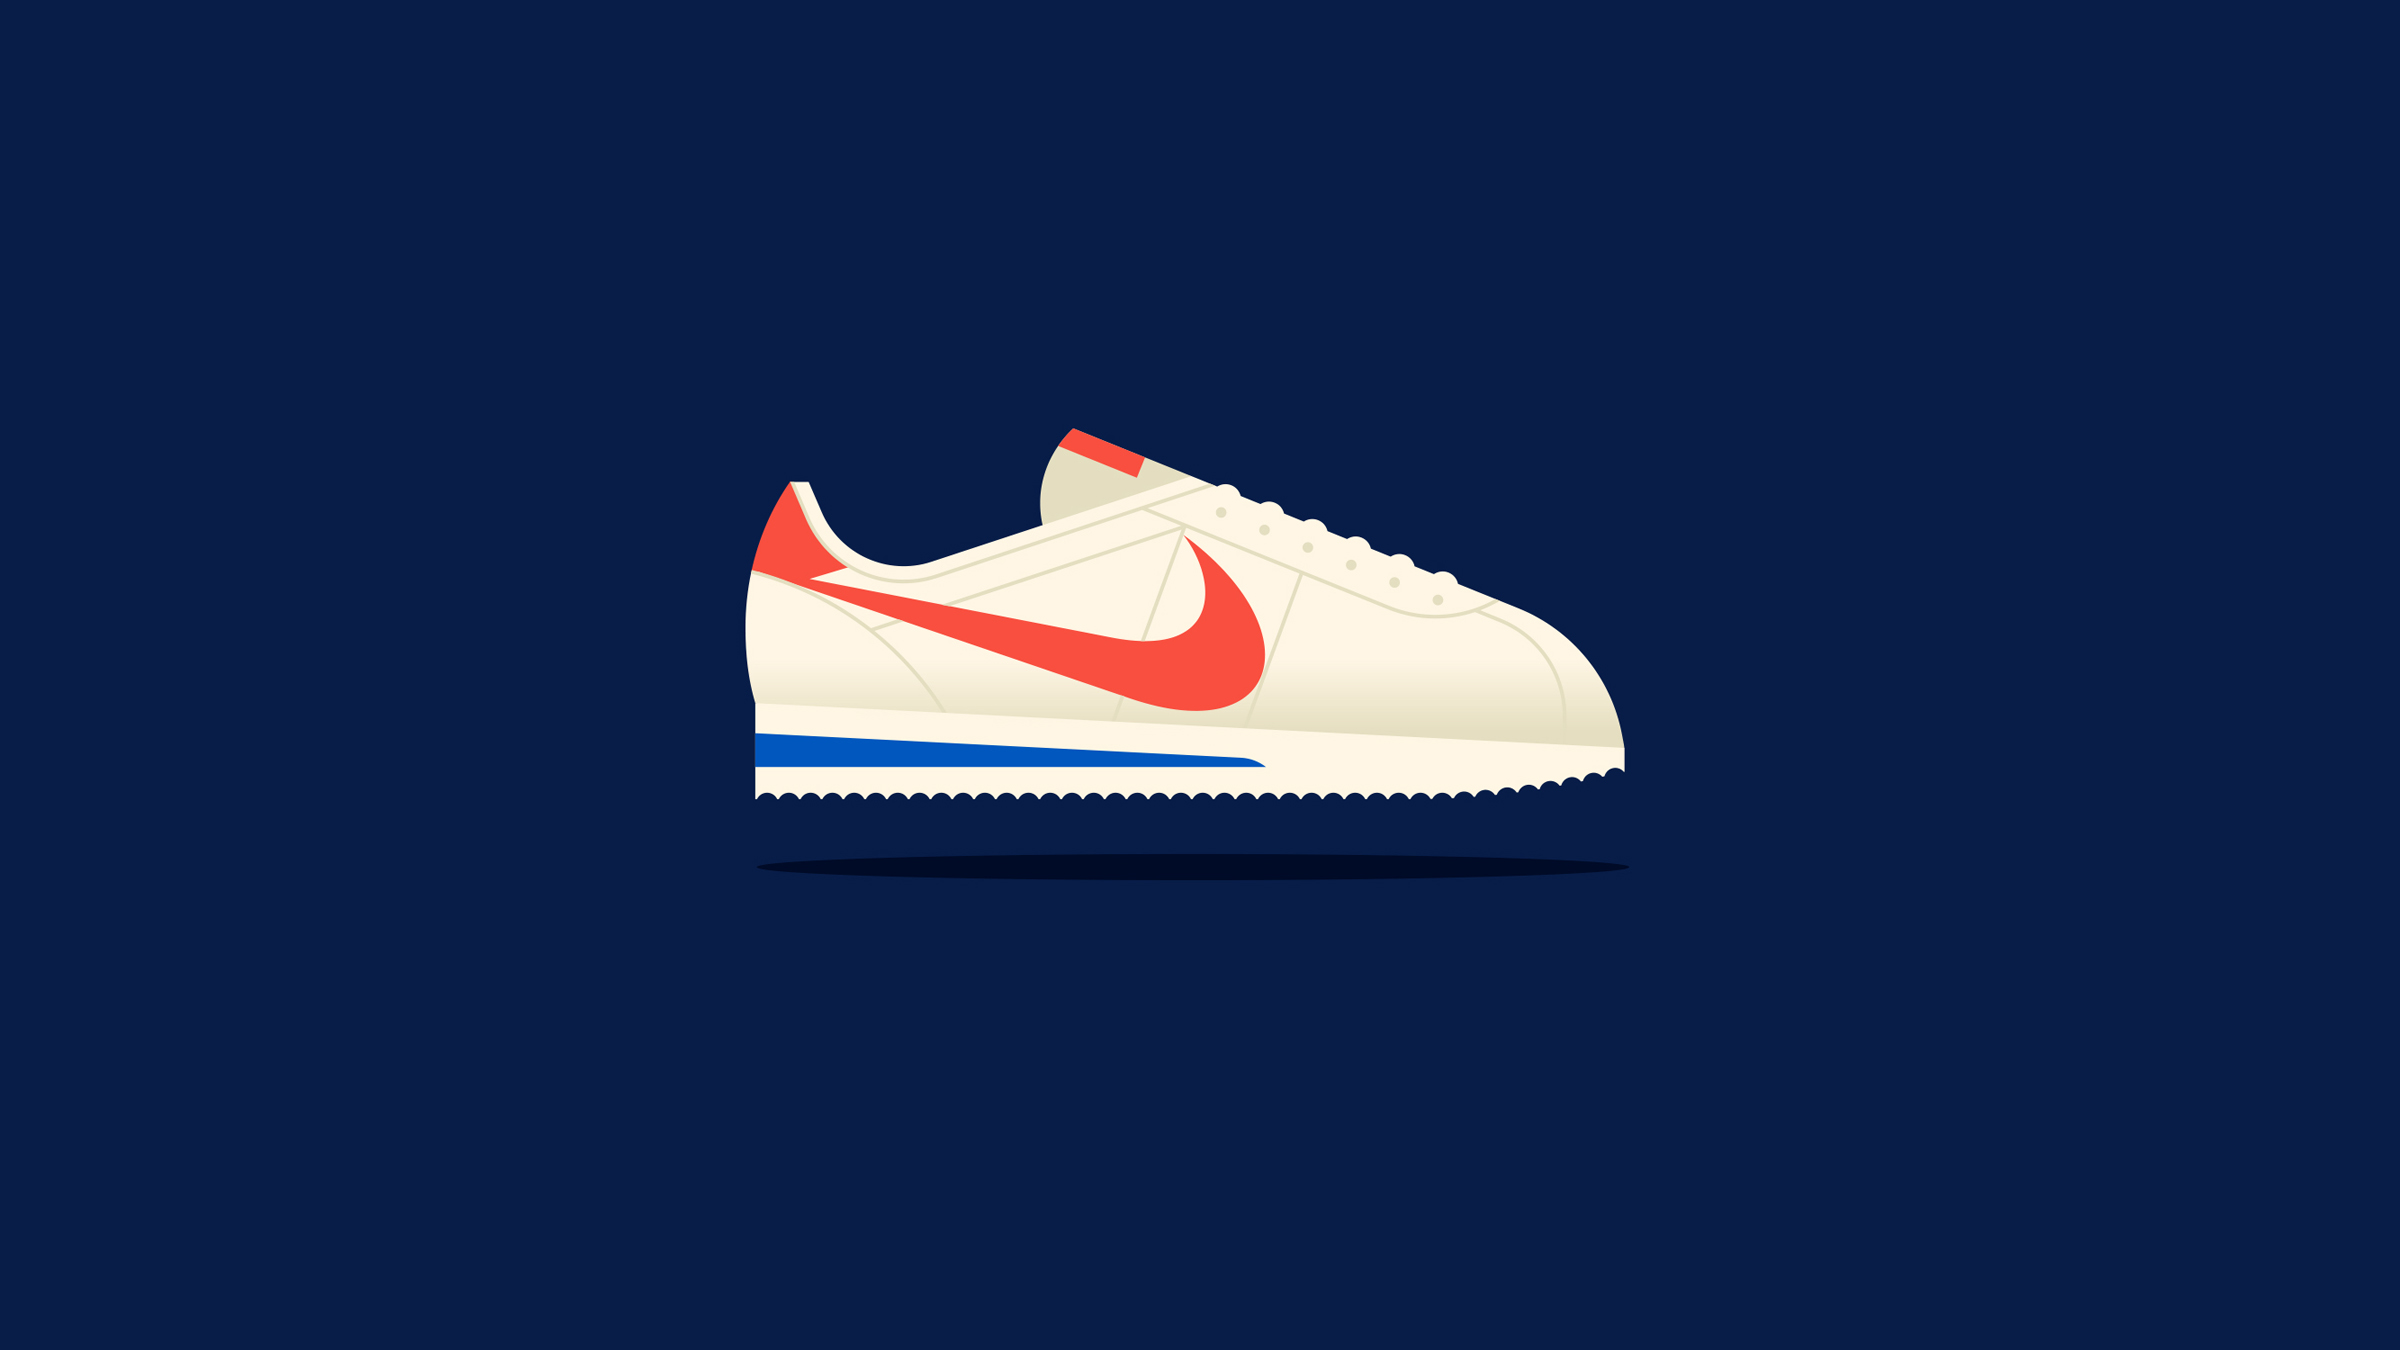 Nike Retro Racer Illustration